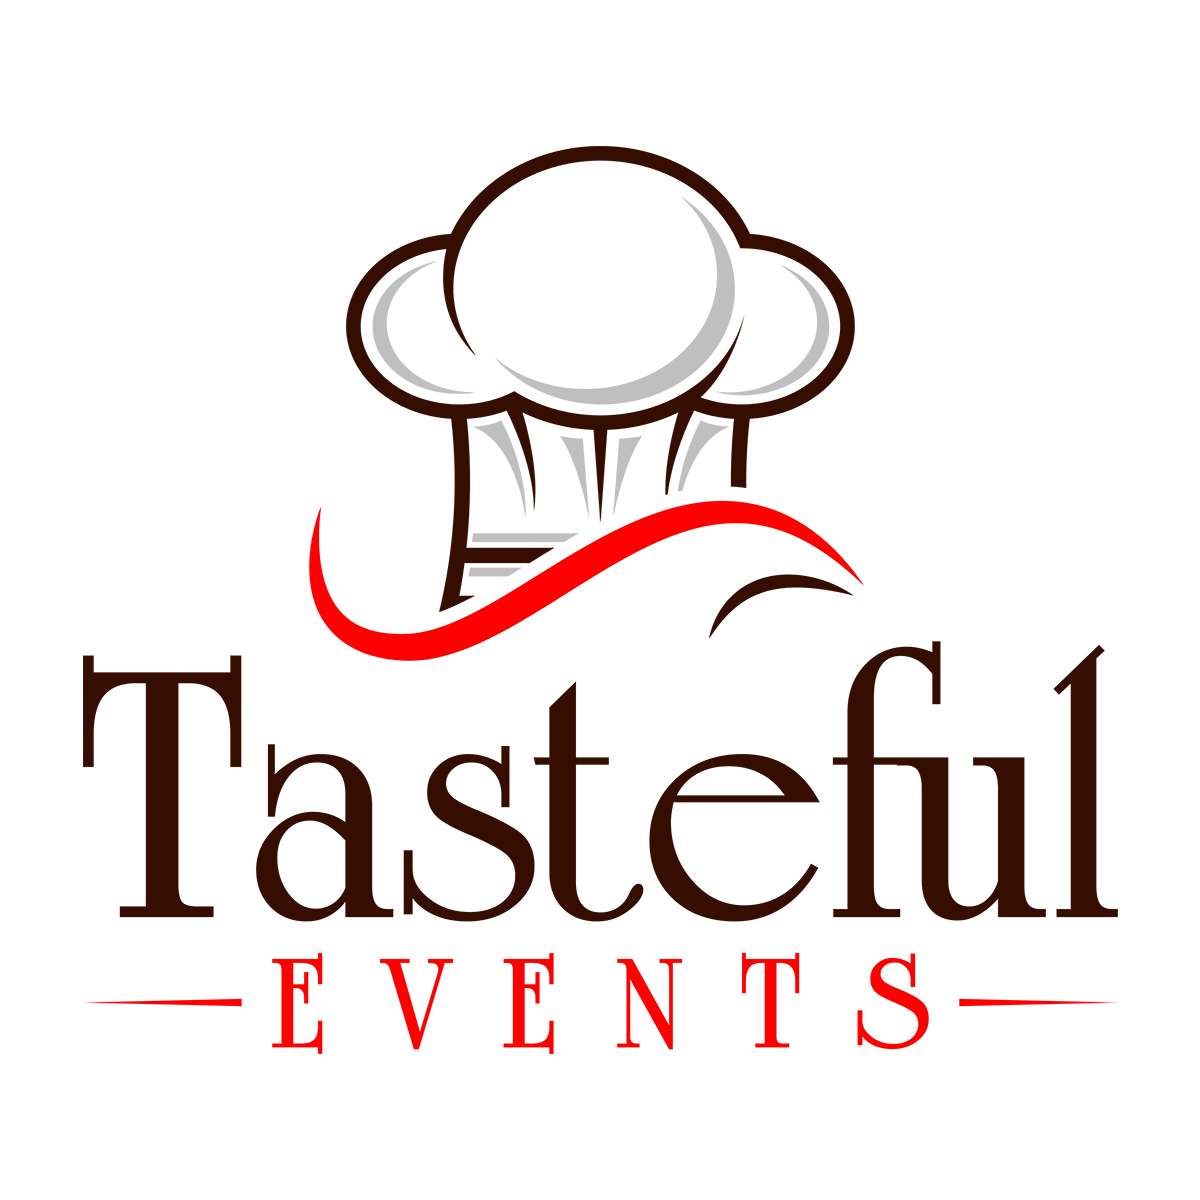 Tasteful Events Catering